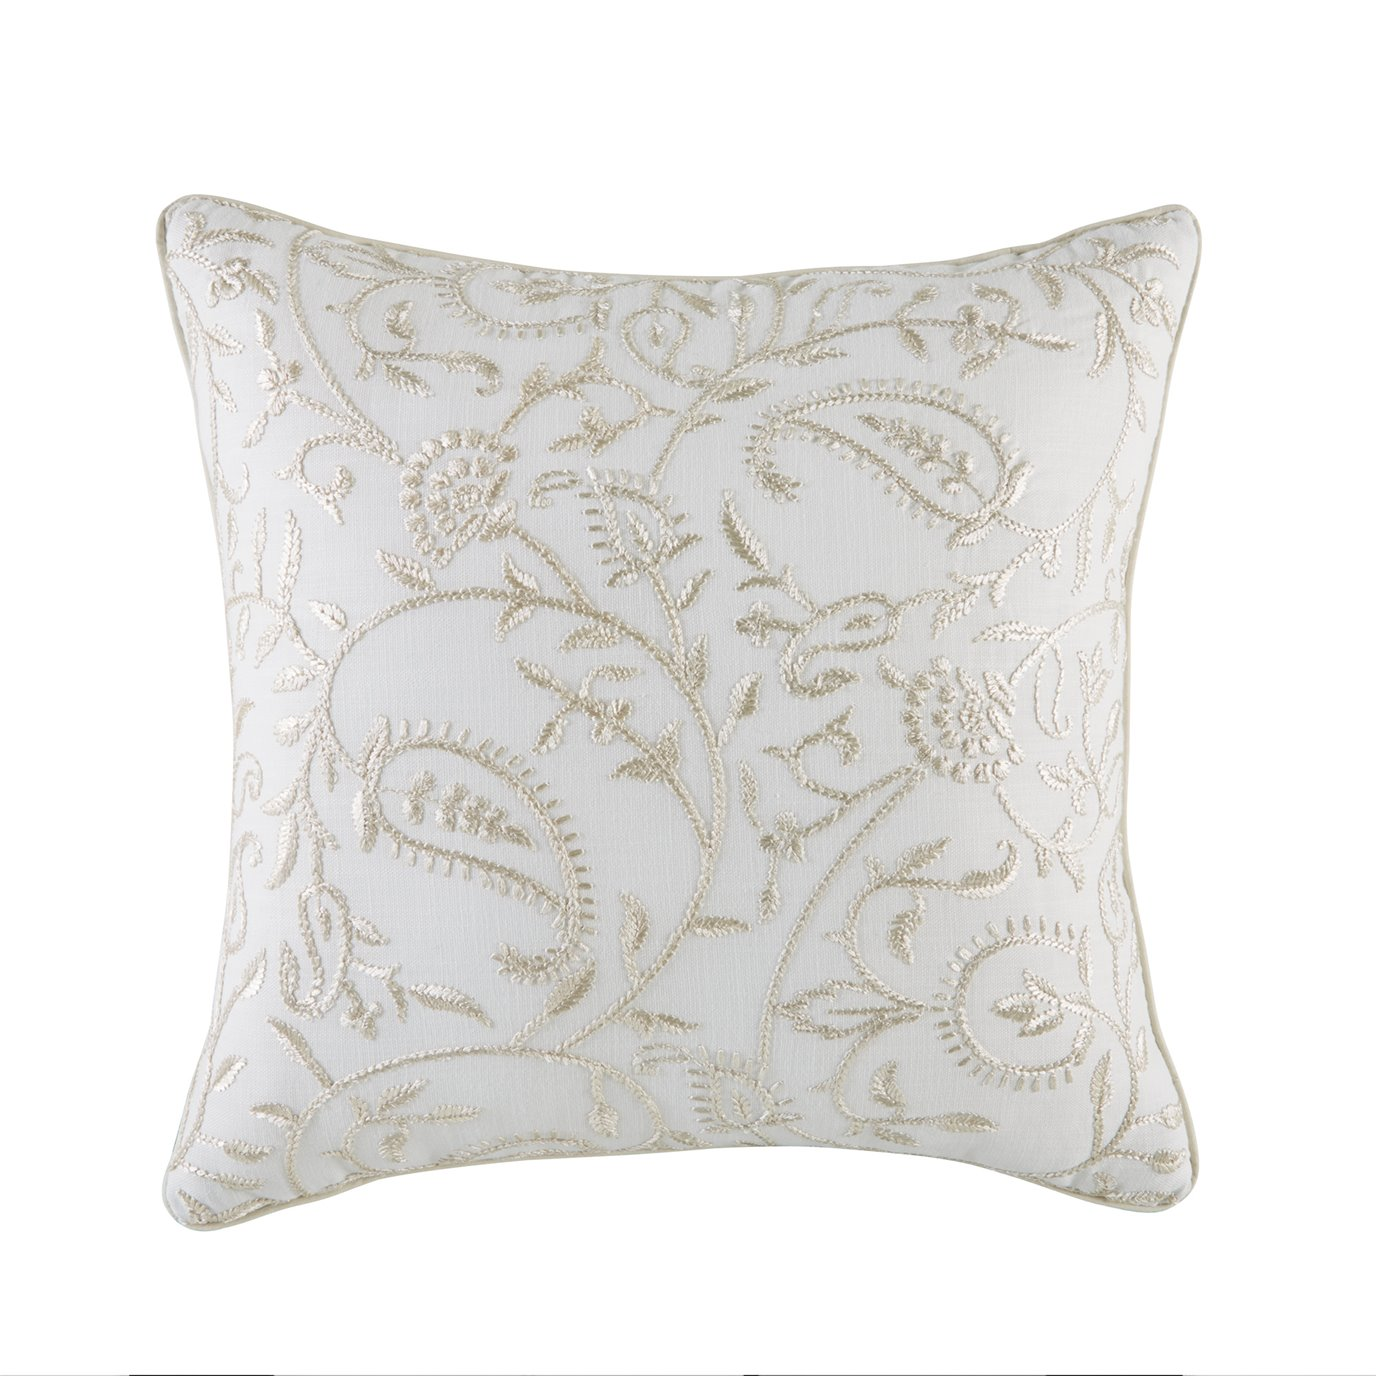 Croscill Cela Fashion Pillow 16x16